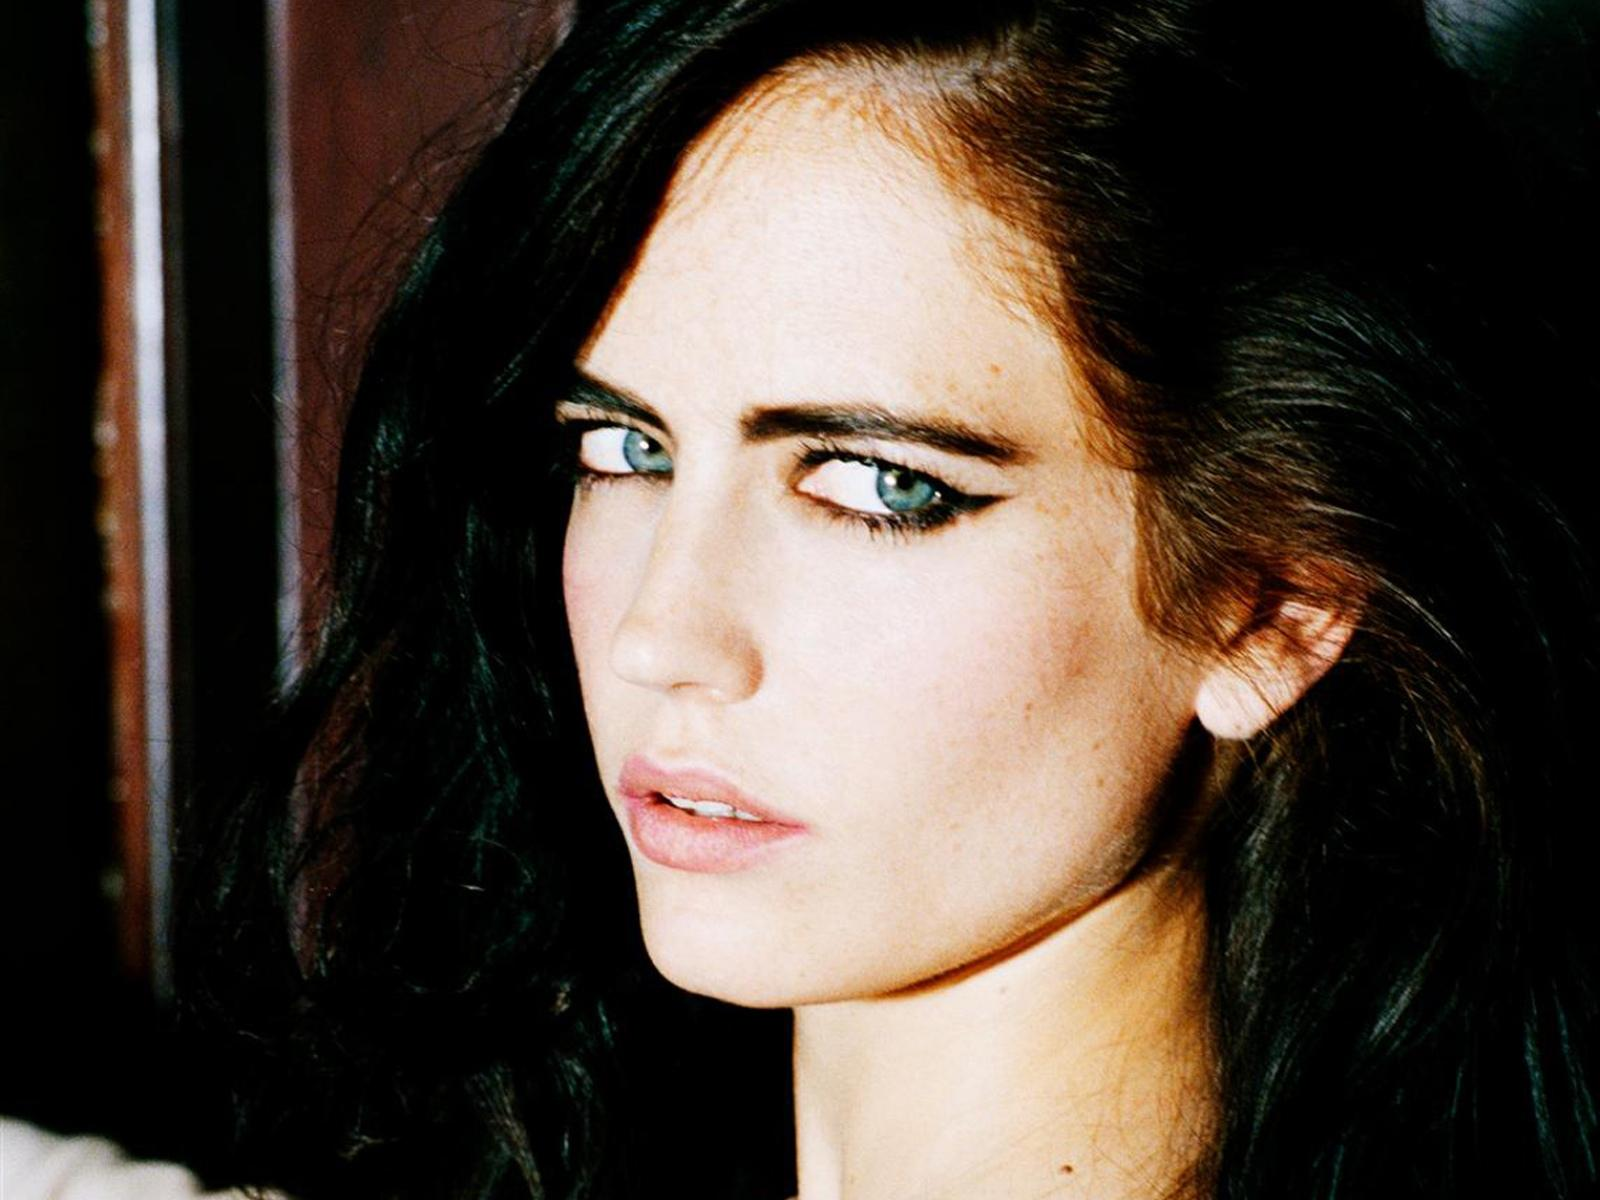 The Beautiful Miss Eva Green Is My Favourite Bond Girl & She Looks At